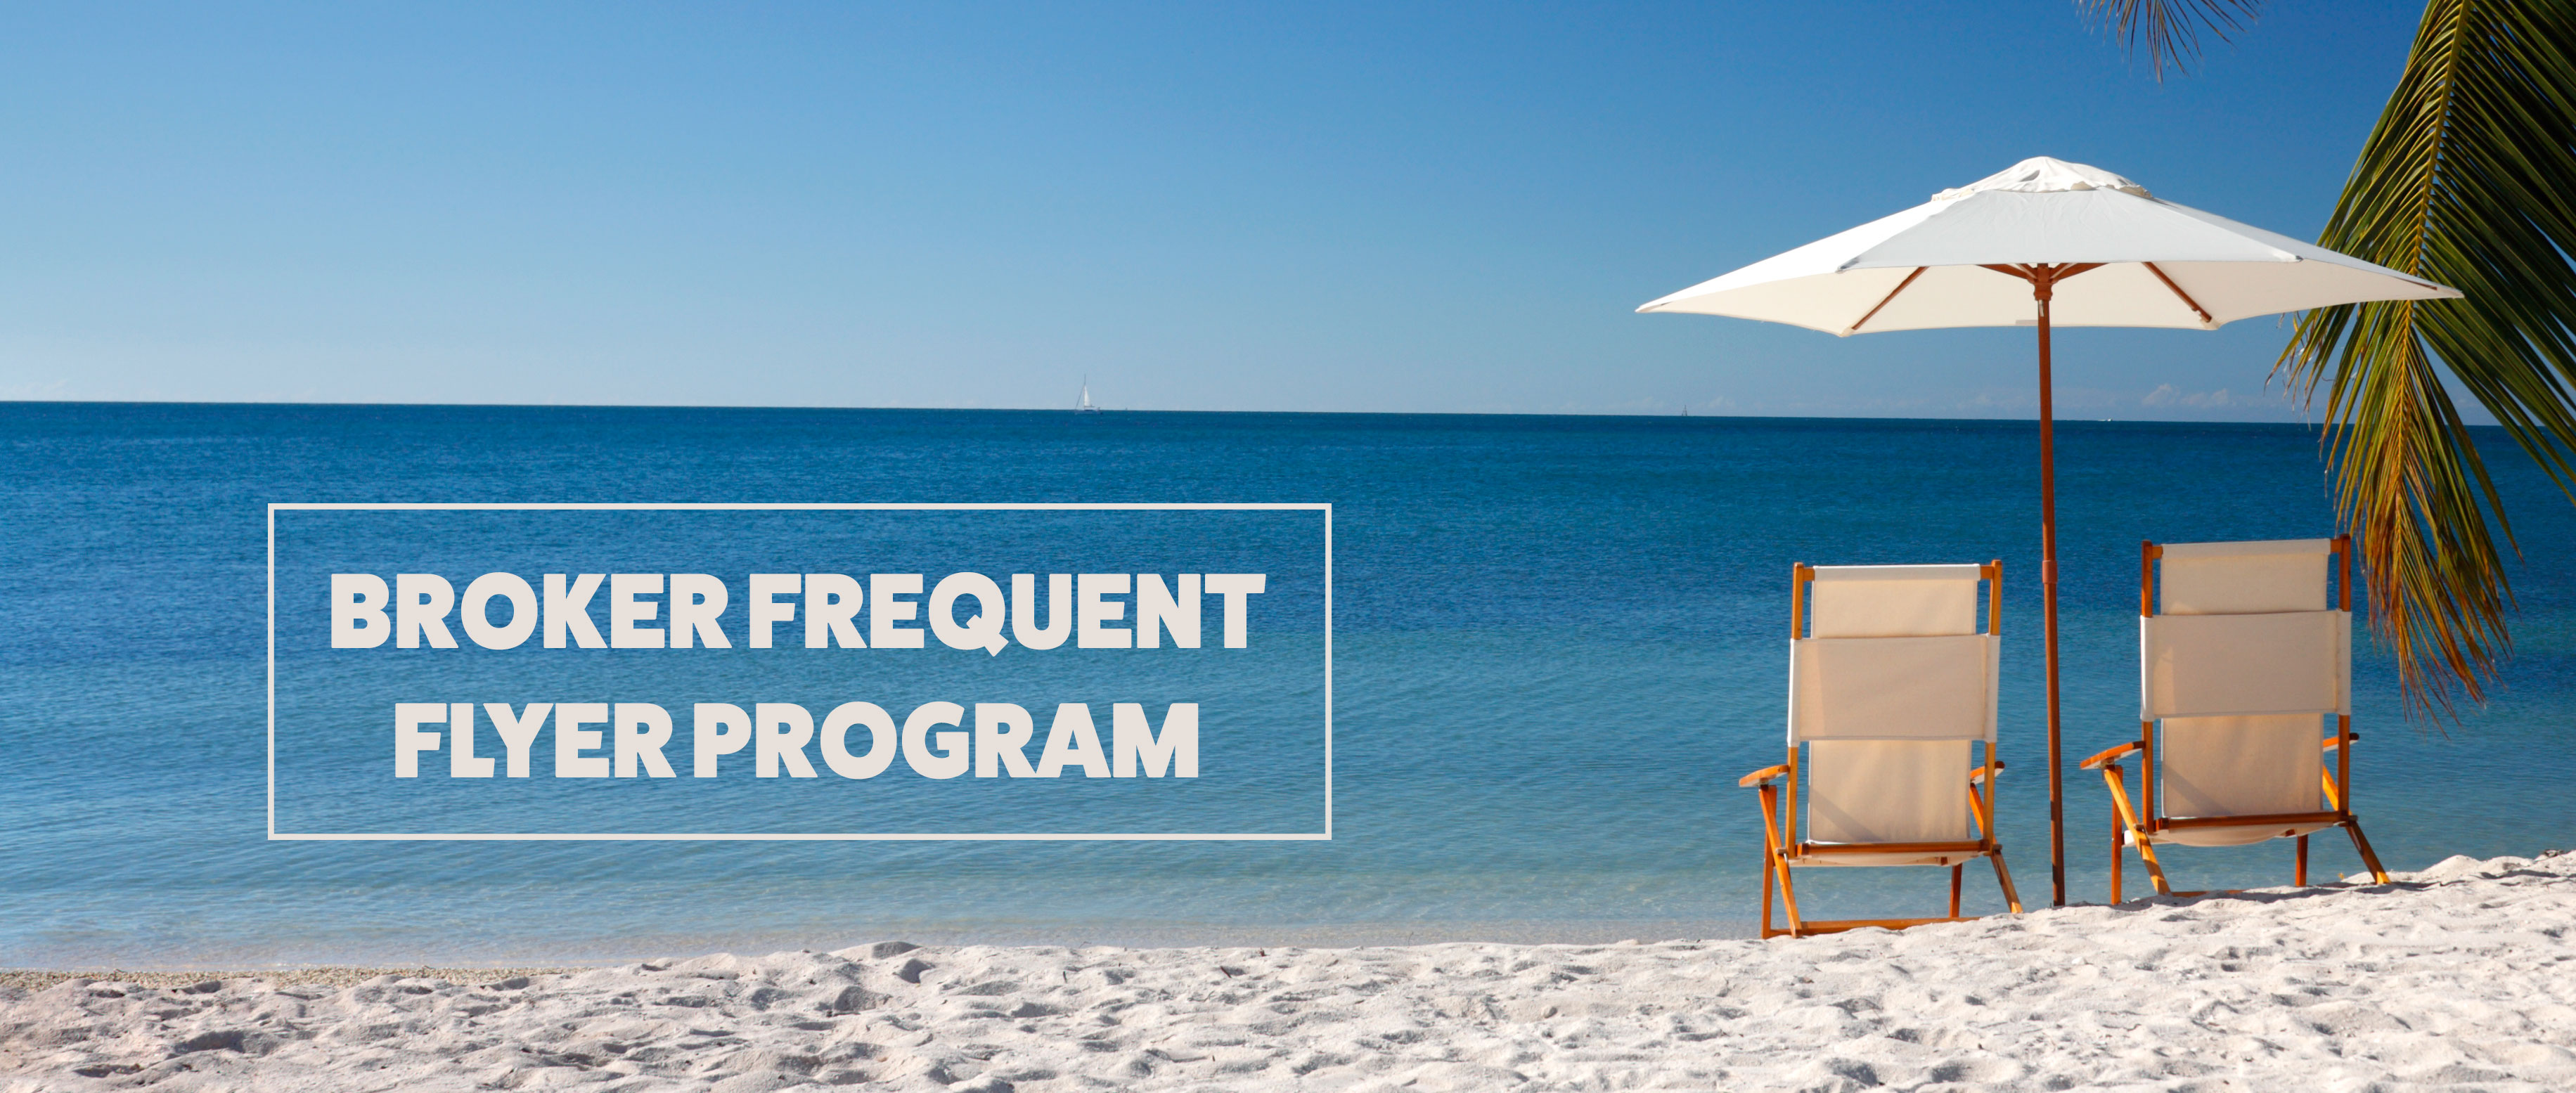 Broker Frequent Flier Program